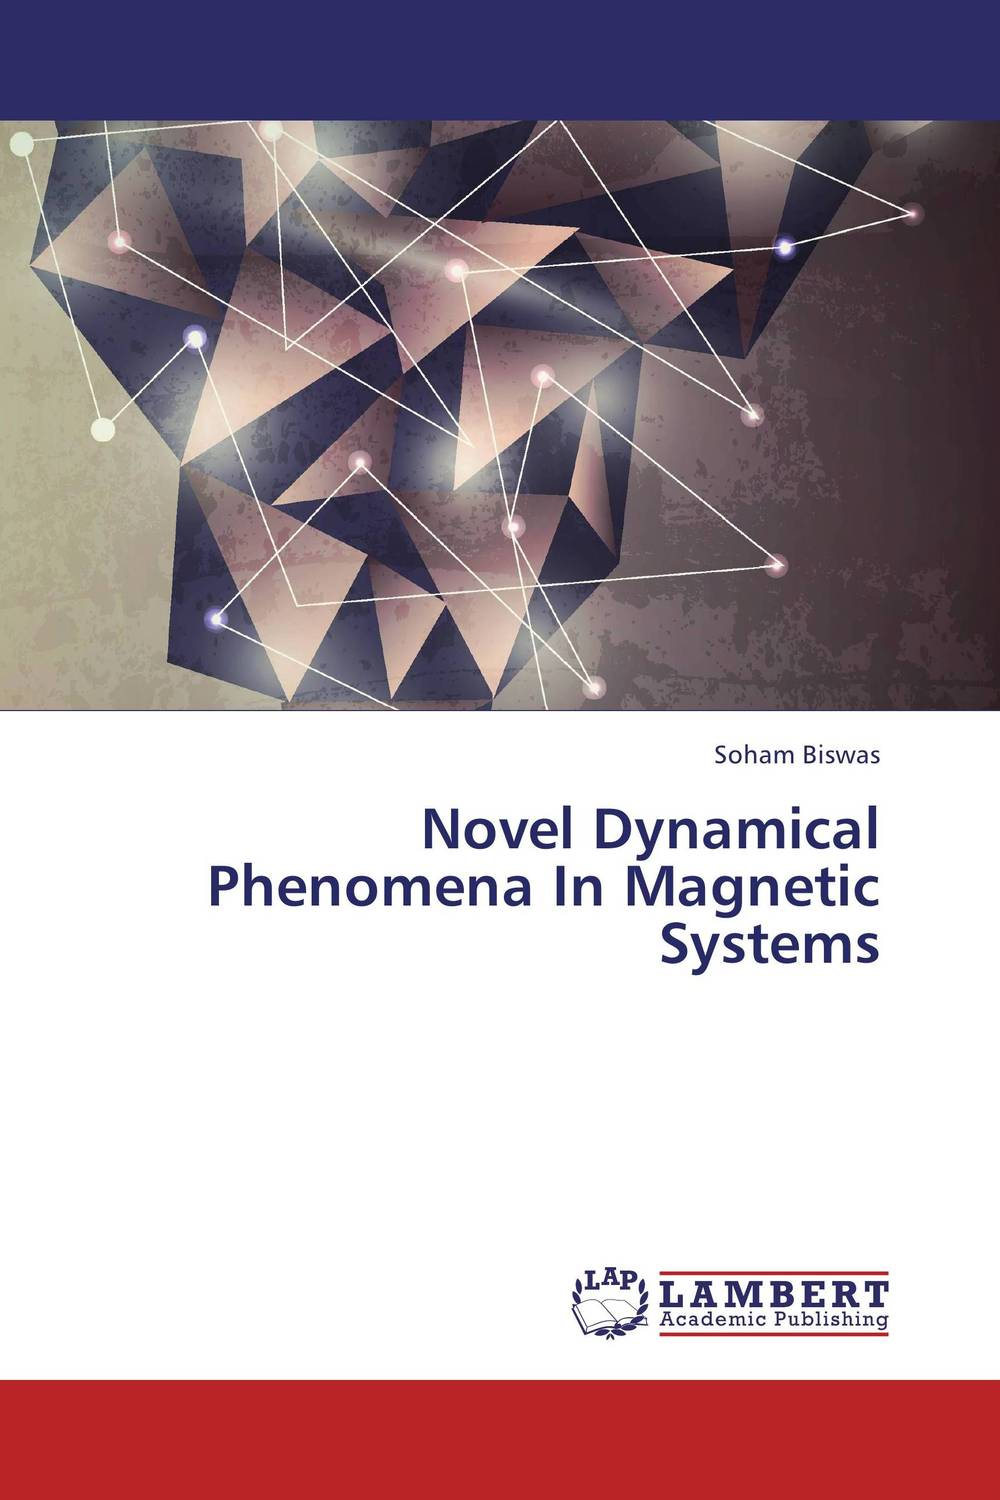 Novel Dynamical Phenomena In Magnetic Systems